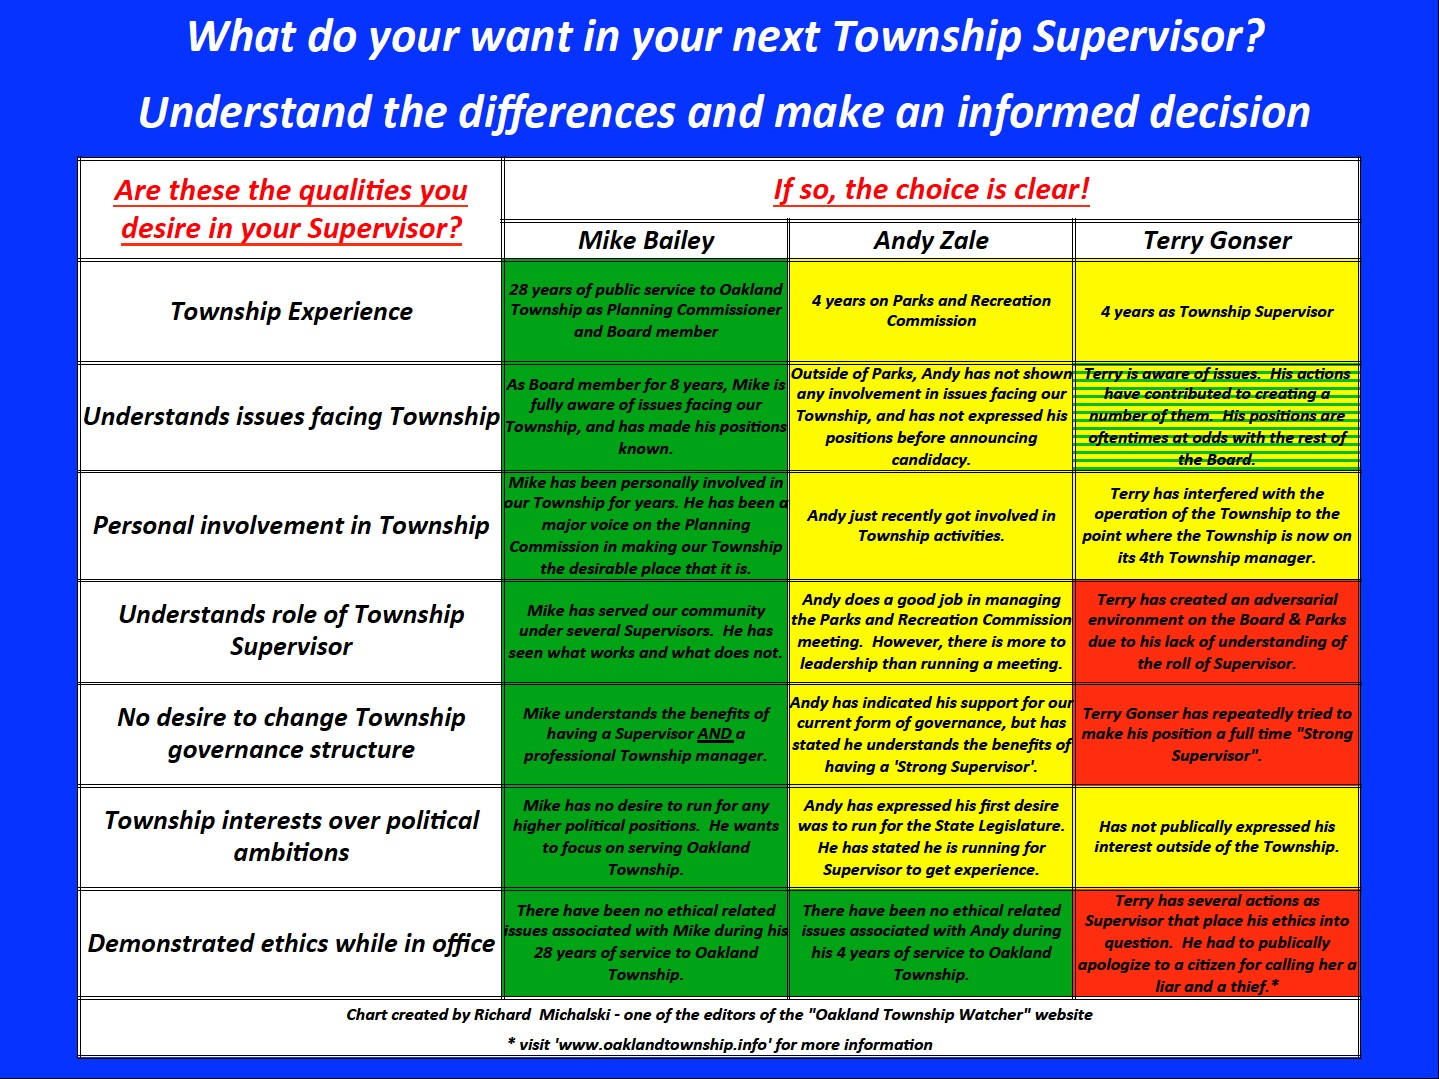 mike bailey oakland township watchers candidate comparison chart rjm